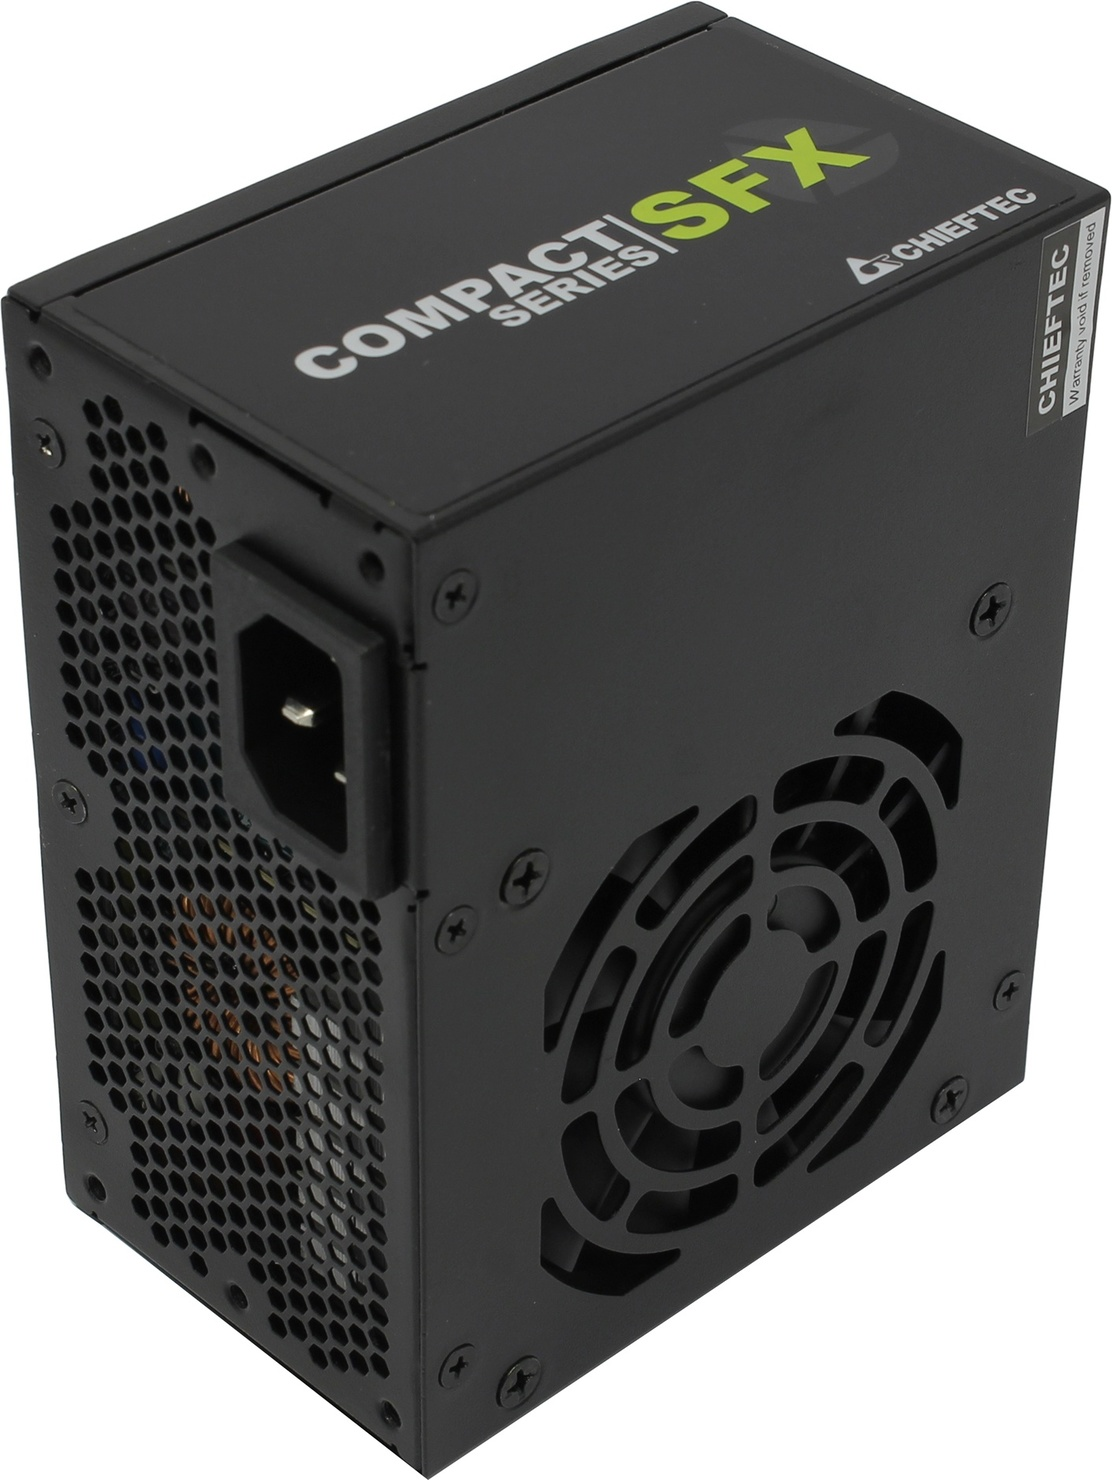 Блок питания Chieftec Compact CSN-650C SFX 80PLUS GOLD 650W Box